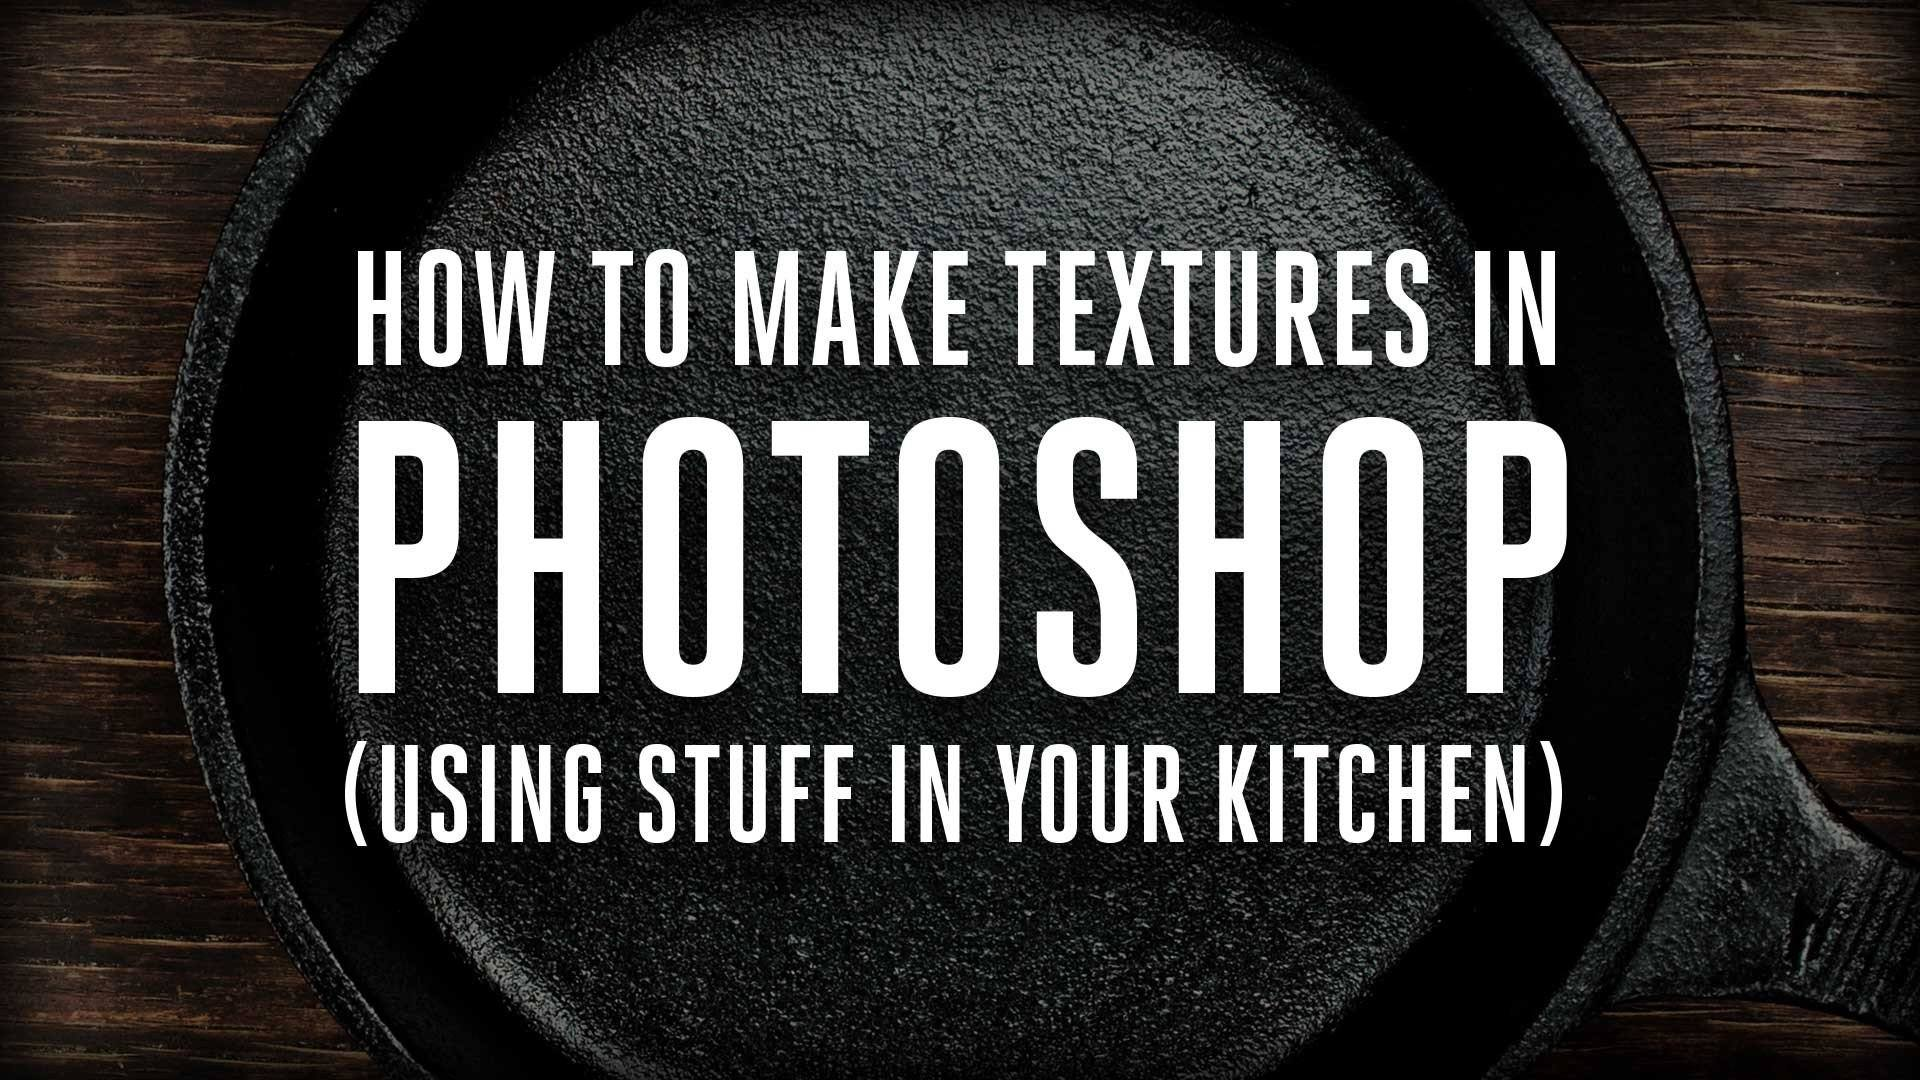 How to Make Textures in Photoshop Using Stuff in Your Kitchen